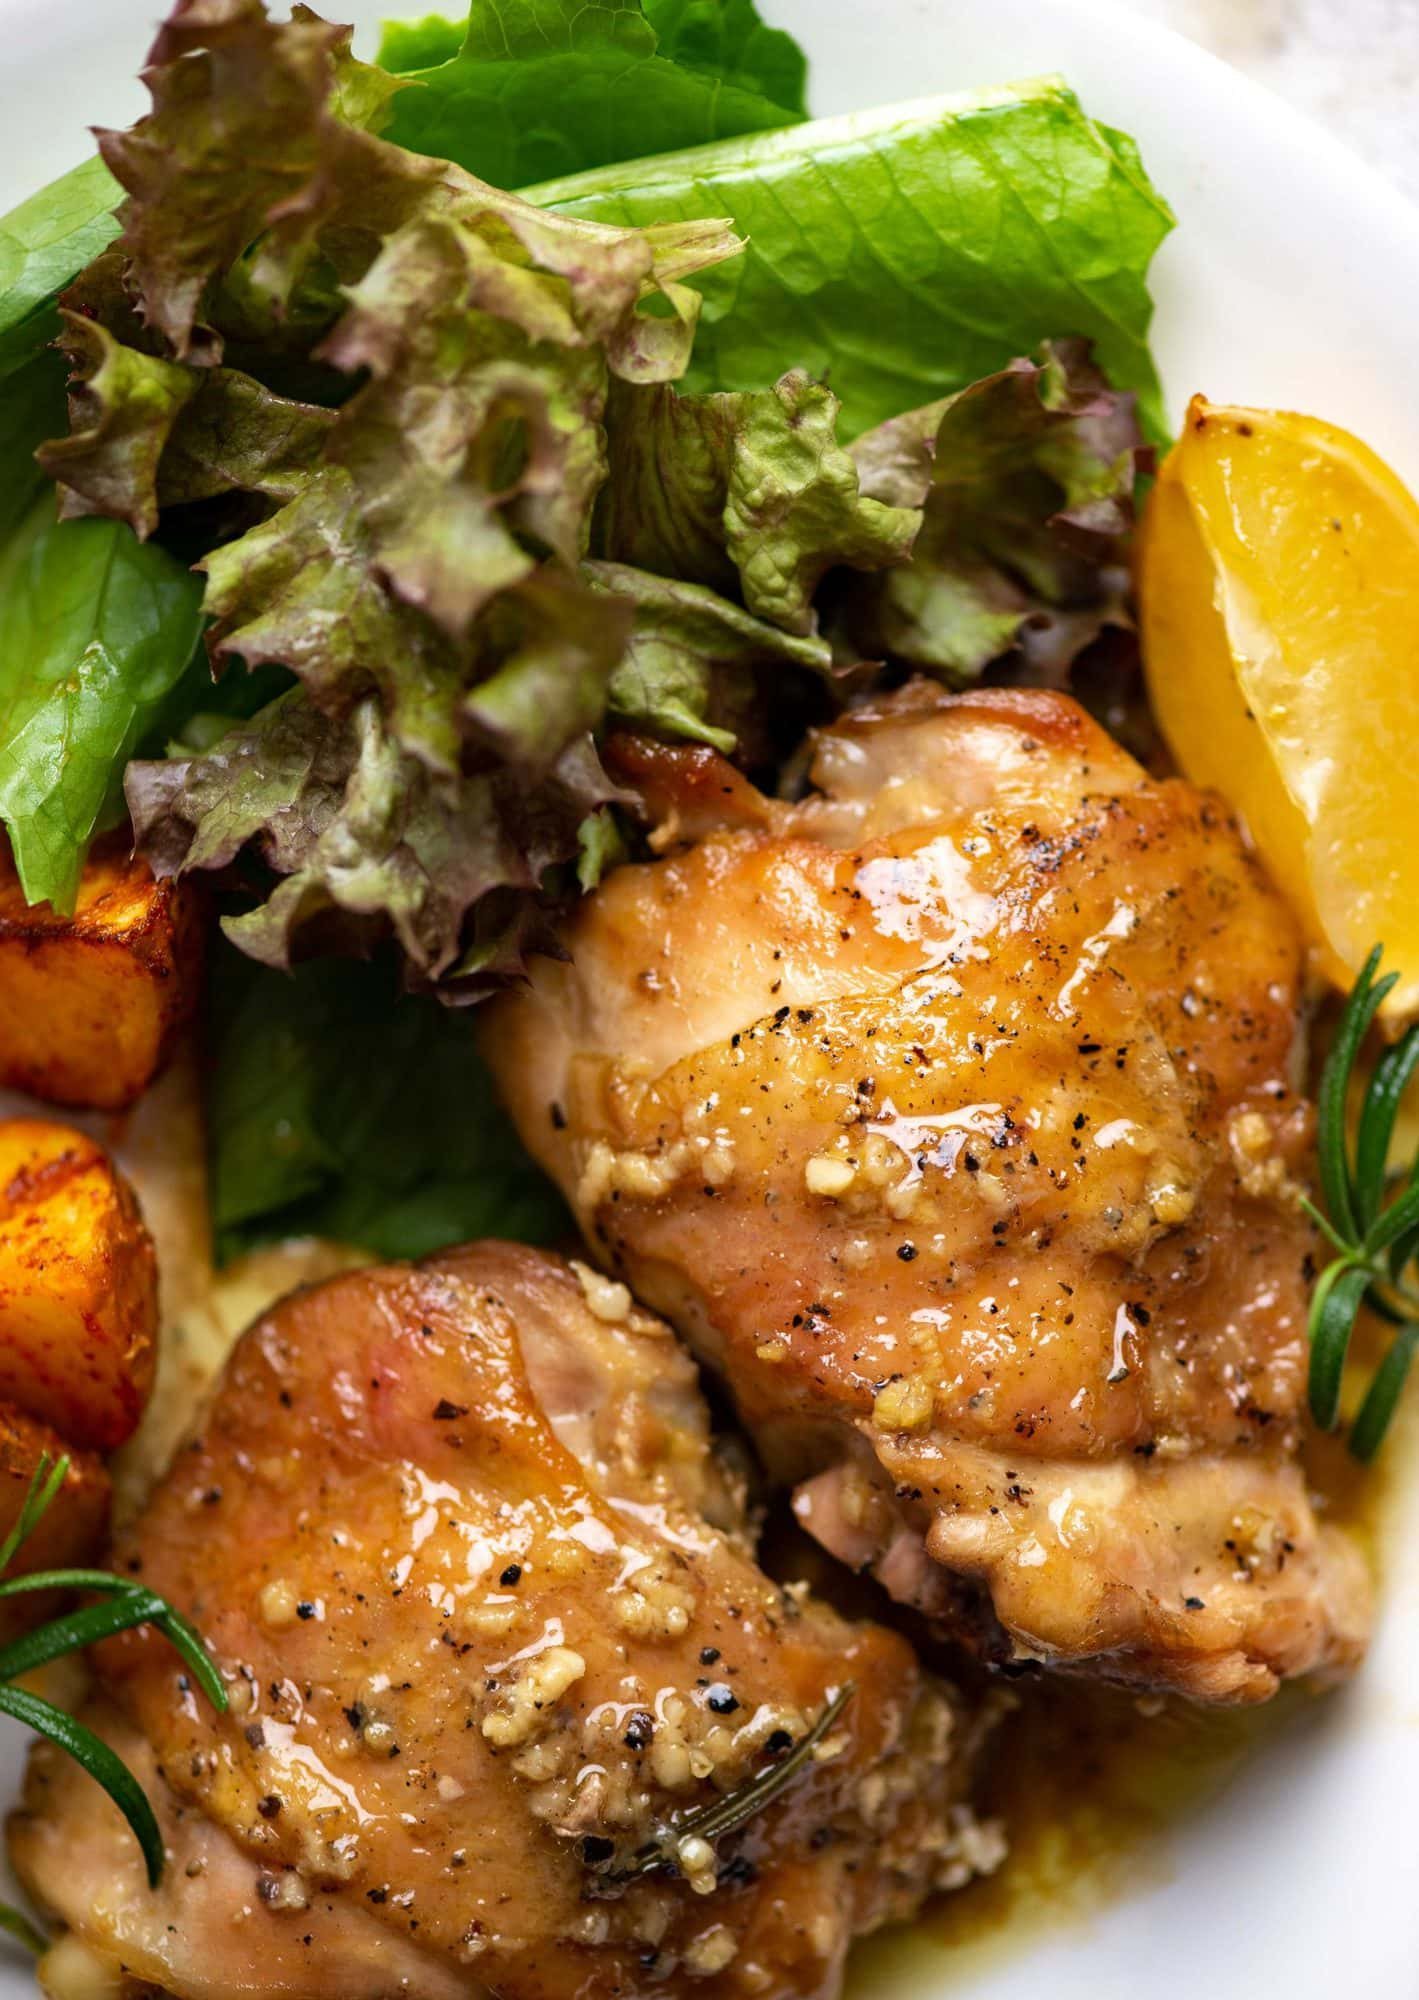 Perfectly baked chicken thighs with crispy skin and lots of lemon butter sauce to drizzle on.  Making this Lemon Chicken thighs recipe is really simple and fit perfectly in your mid-week dinner menu.